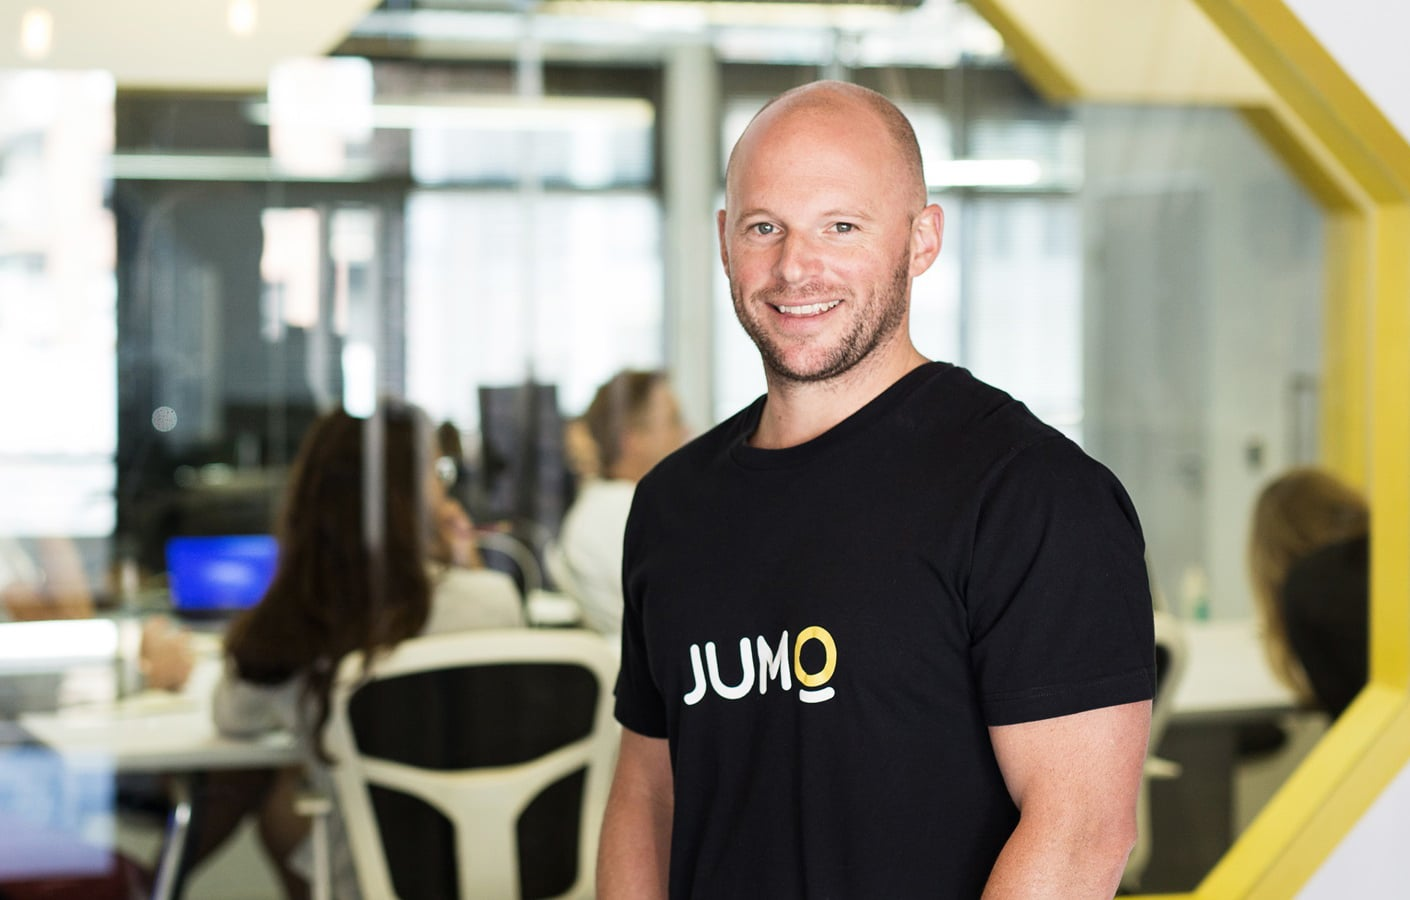 SA fintech JUMO secures first two commitments in new funding round